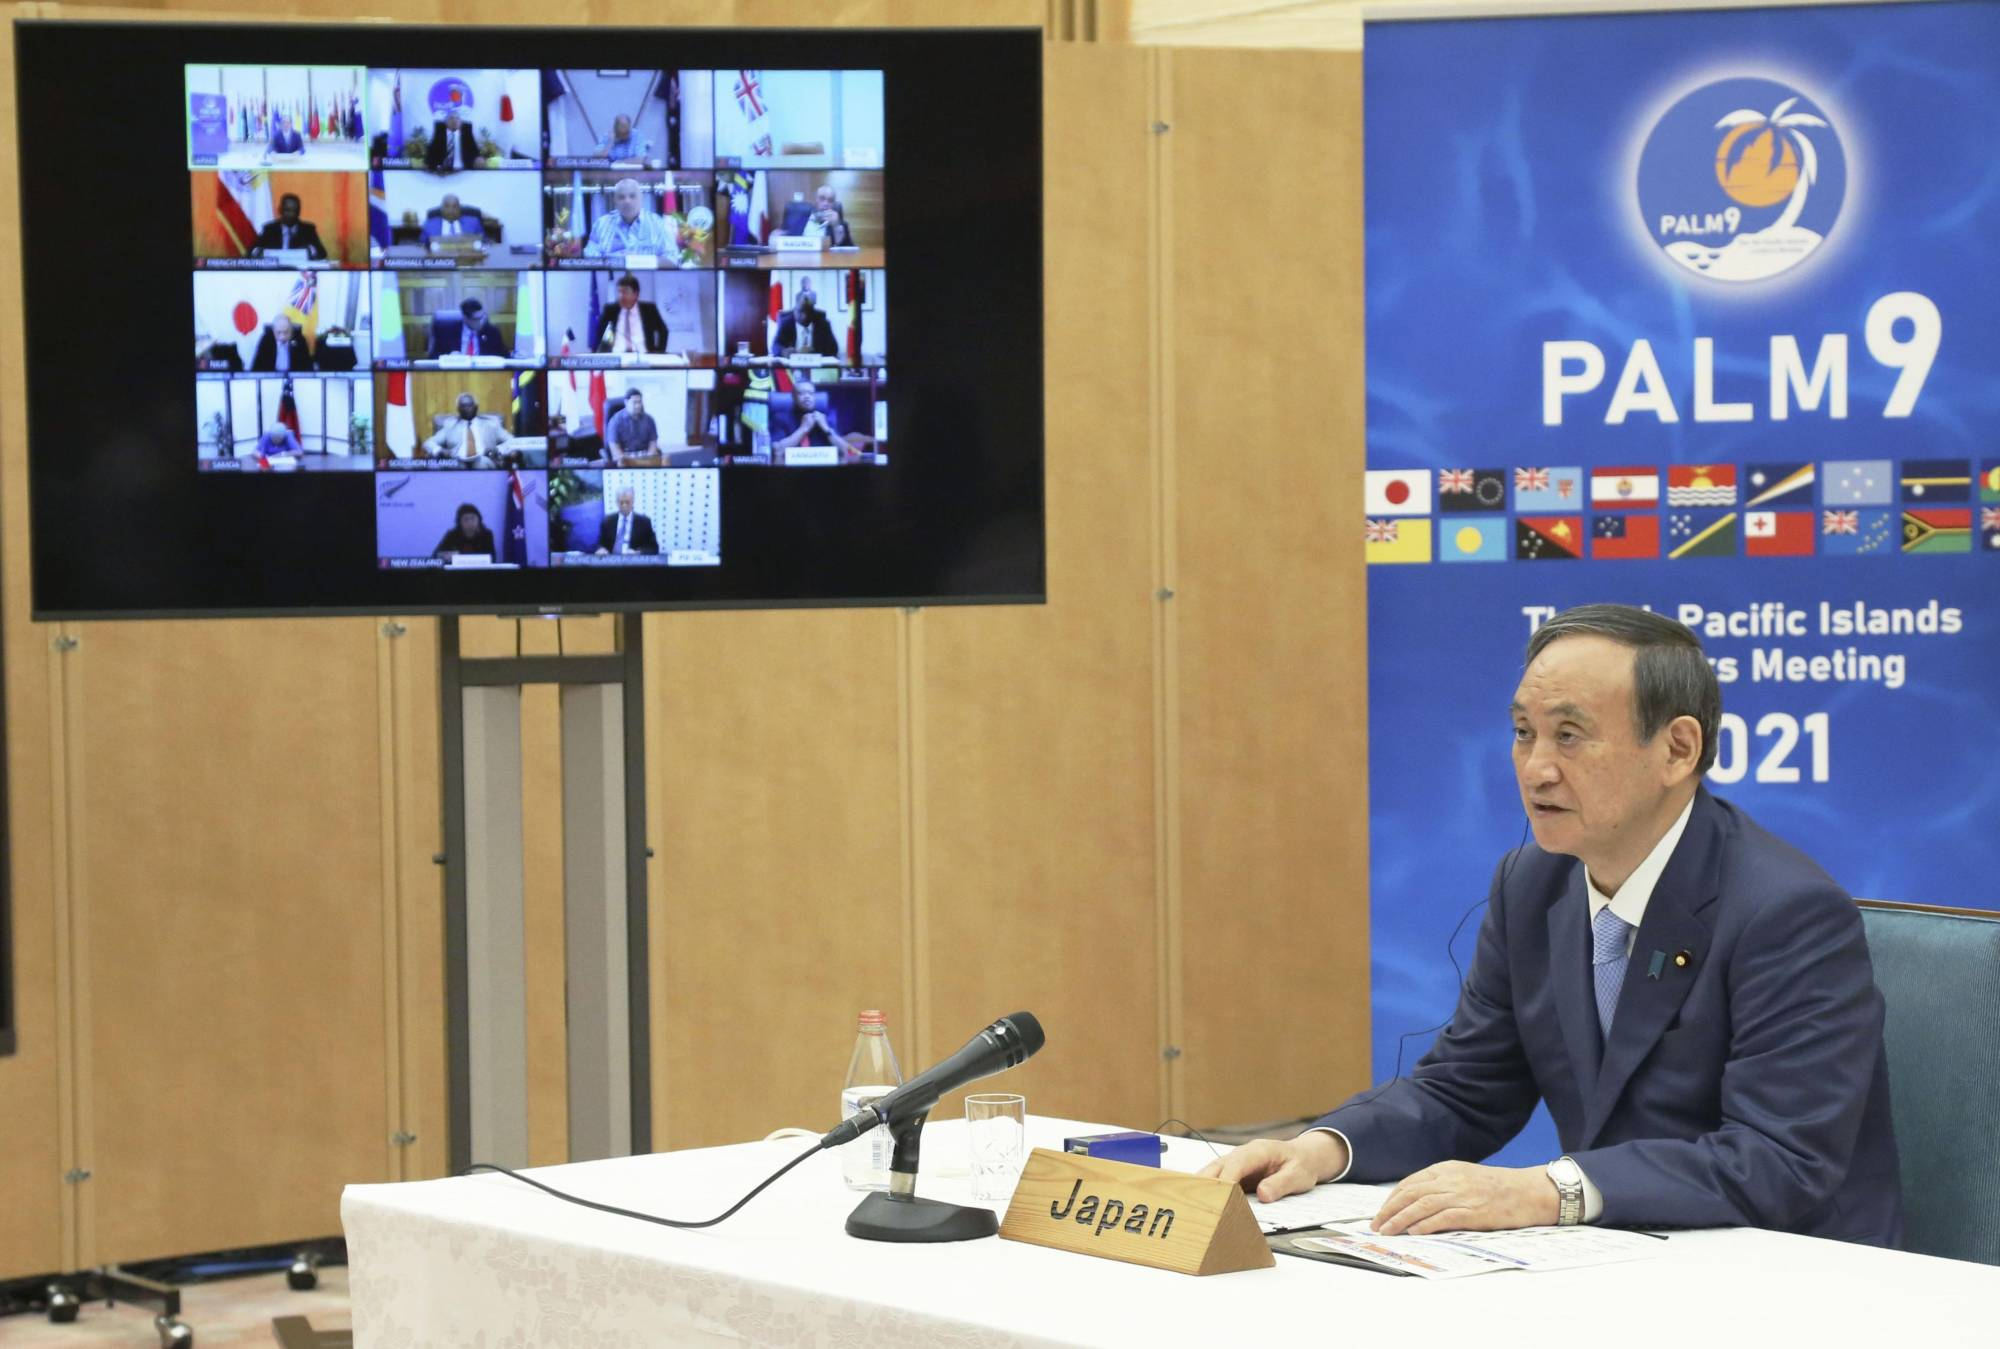 Prime Minister Yoshihide Suga addresses an online meeting with leaders of Pacific island nations and territories on Friday at the Prime Minister's Office. | KYODO